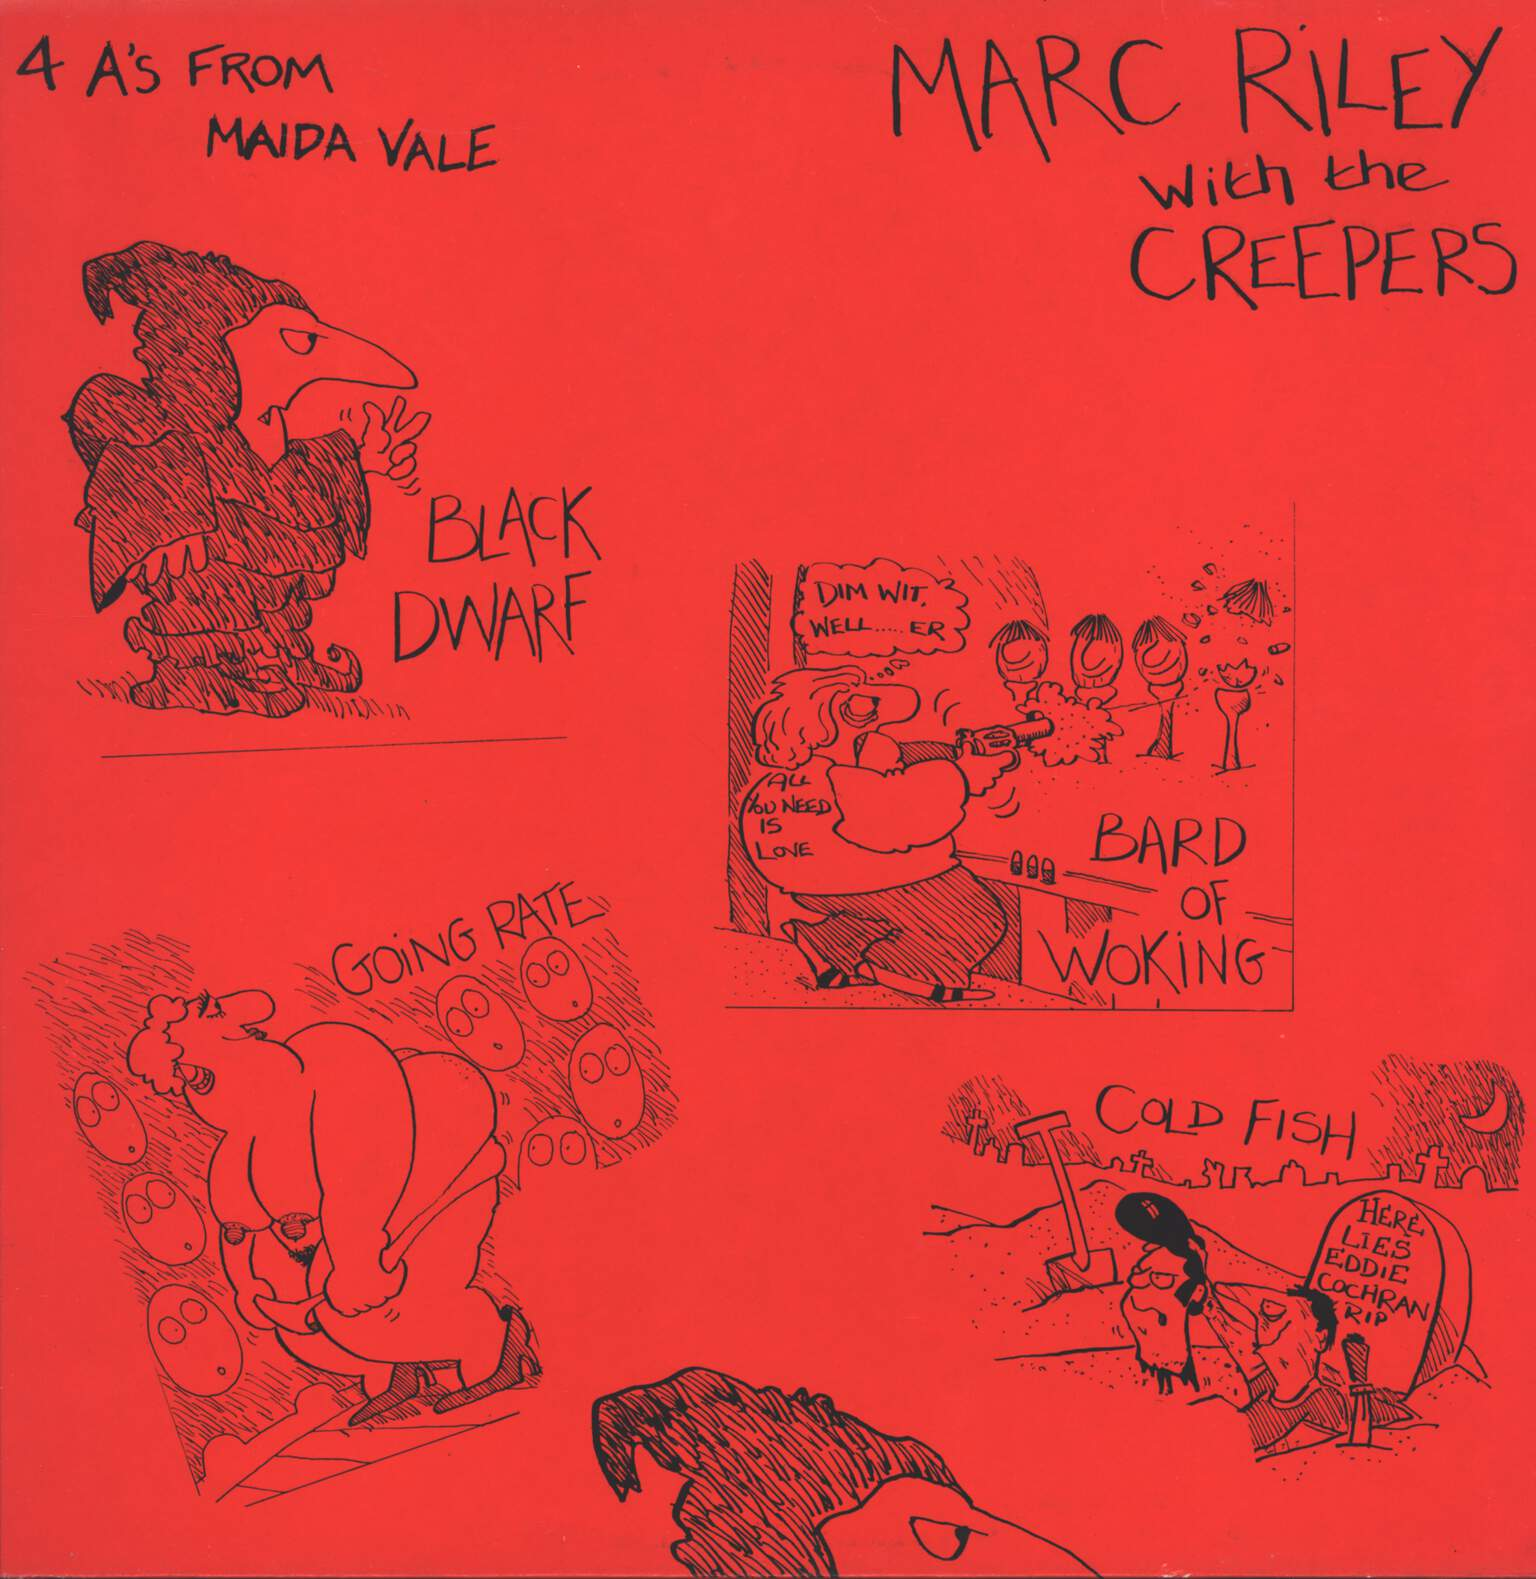 "Marc Riley: 4 A's From Maida Vale, 12"" Maxi Single (Vinyl)"